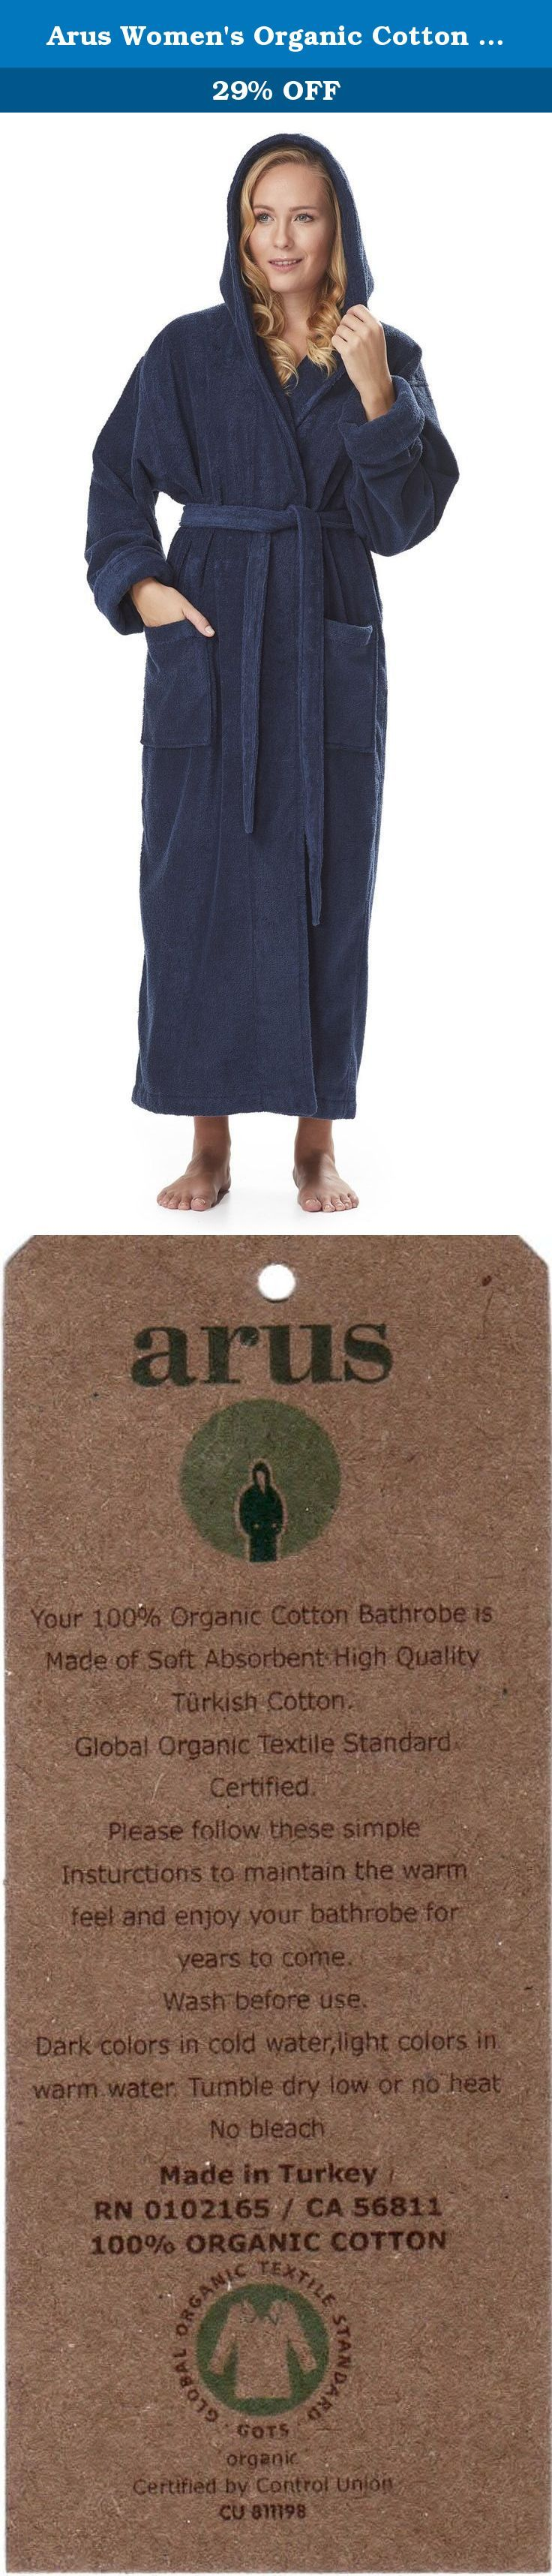 """Arus Women's Organic Cotton Hooded Full Length Turkish Bathrobe, Marine, L. Arus Women's Organic Cotton Hooded Full Length Turkish Bathrobe Ankle Long Robe. FULL LENGTH Wide Cut Style Turkish Terry Cotton bathrobe available in 4 Sizes (S - M - L - XL) and 4 colors with length up to 57"""". This Organic Ankle Length Style Bathrobe is designed for customers looking for a true ankle length bathrobe made of GOTS (Global Organic Textile Standard) Certified Organic Turkish Cotton. It has a self..."""